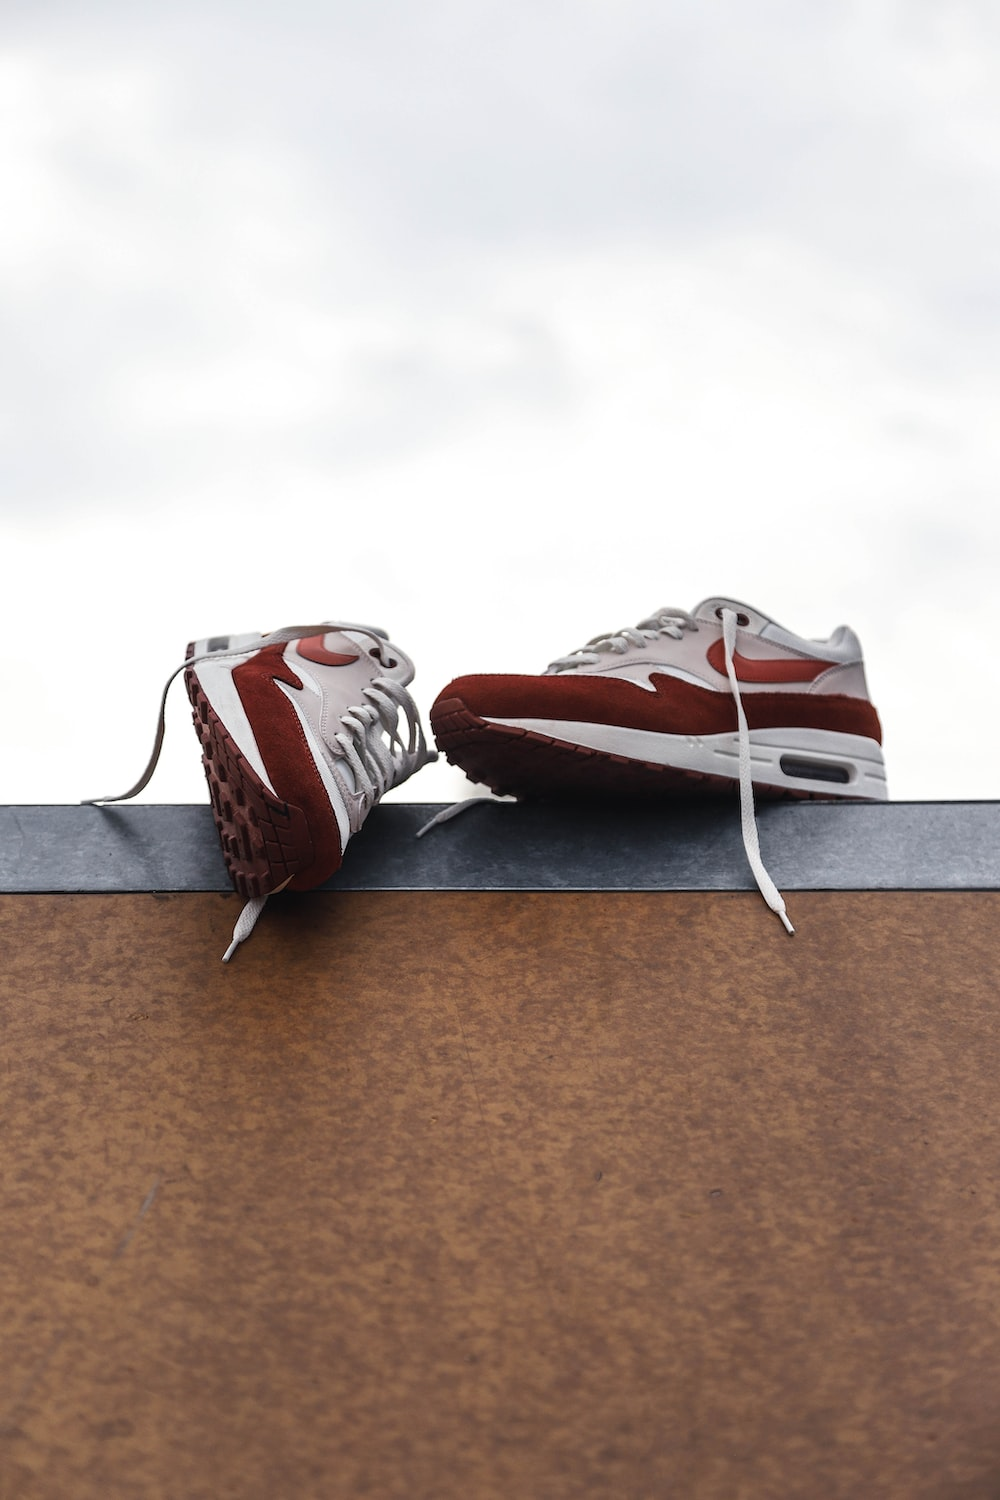 20+ Nike Shoes Pictures | Download Free Images on Unsplash